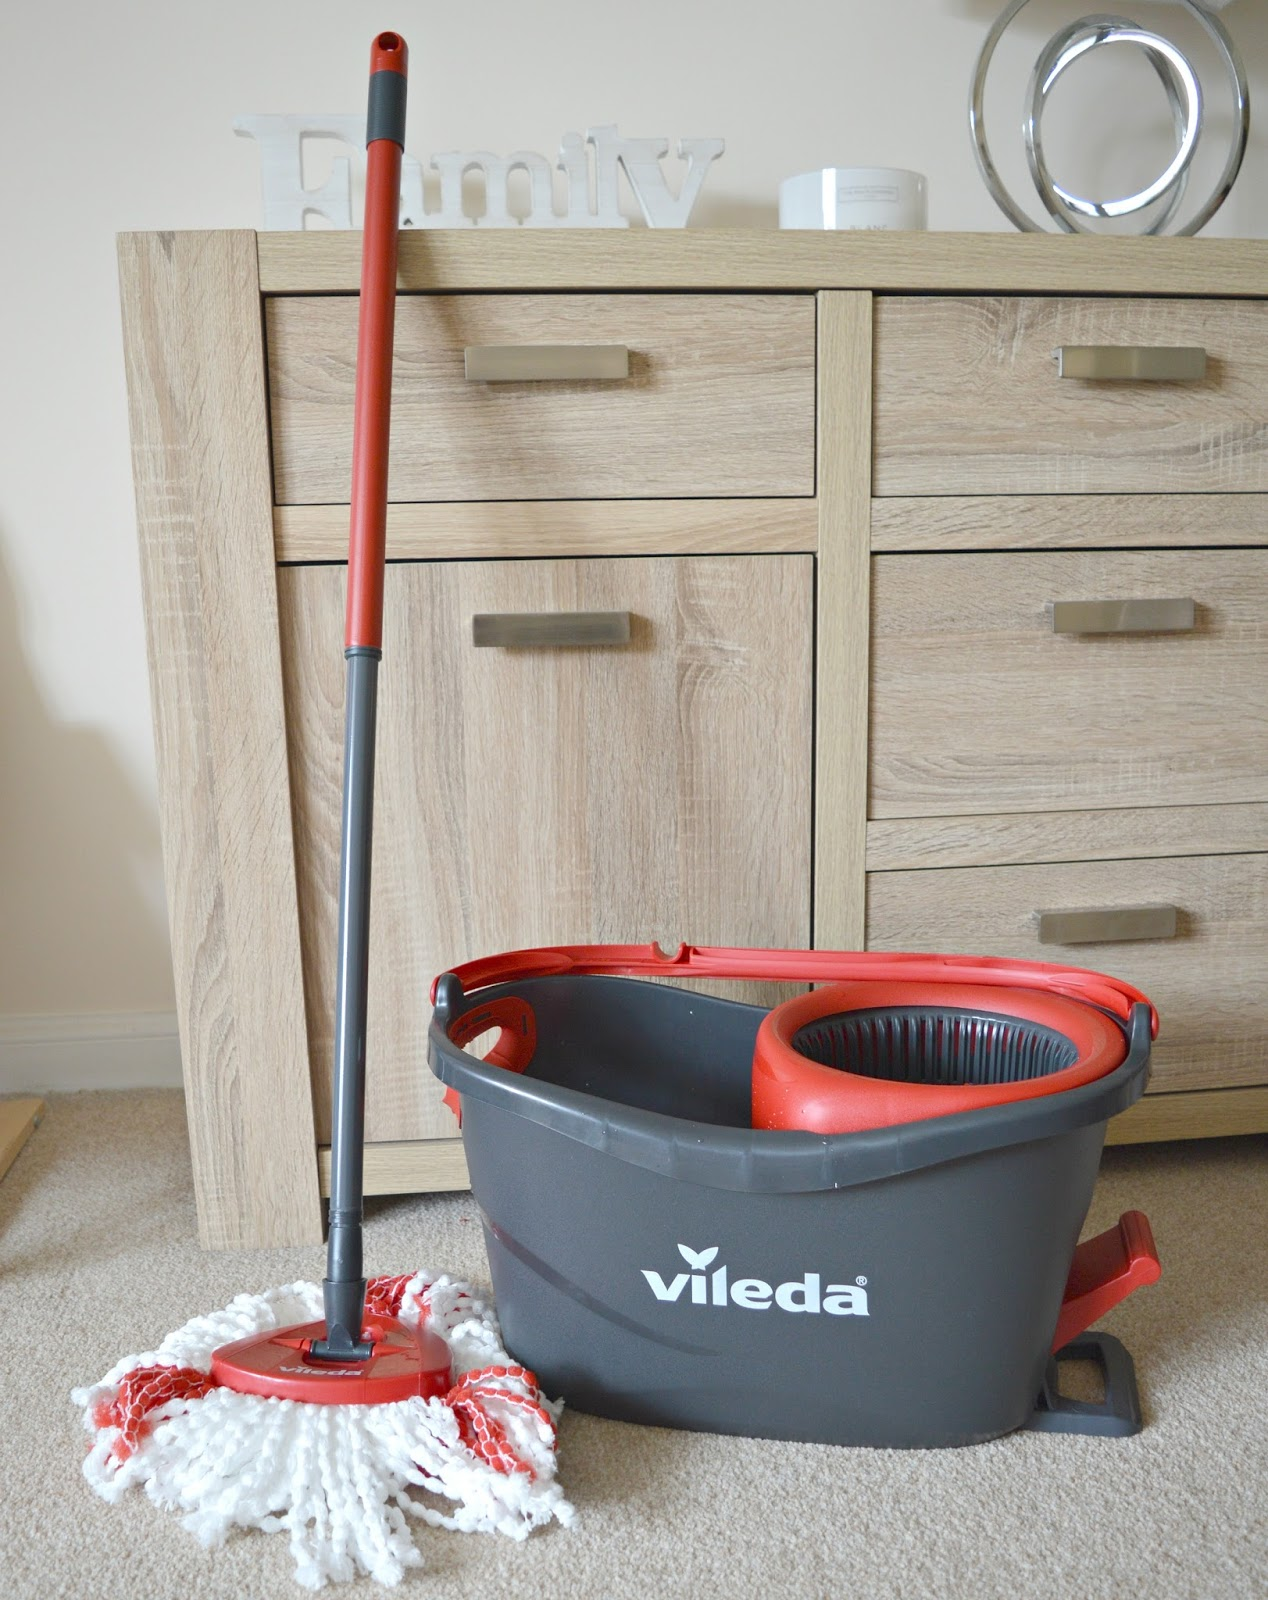 Vileda Easy Wring Clean Turbo Mop Review Sophie Ella And Me